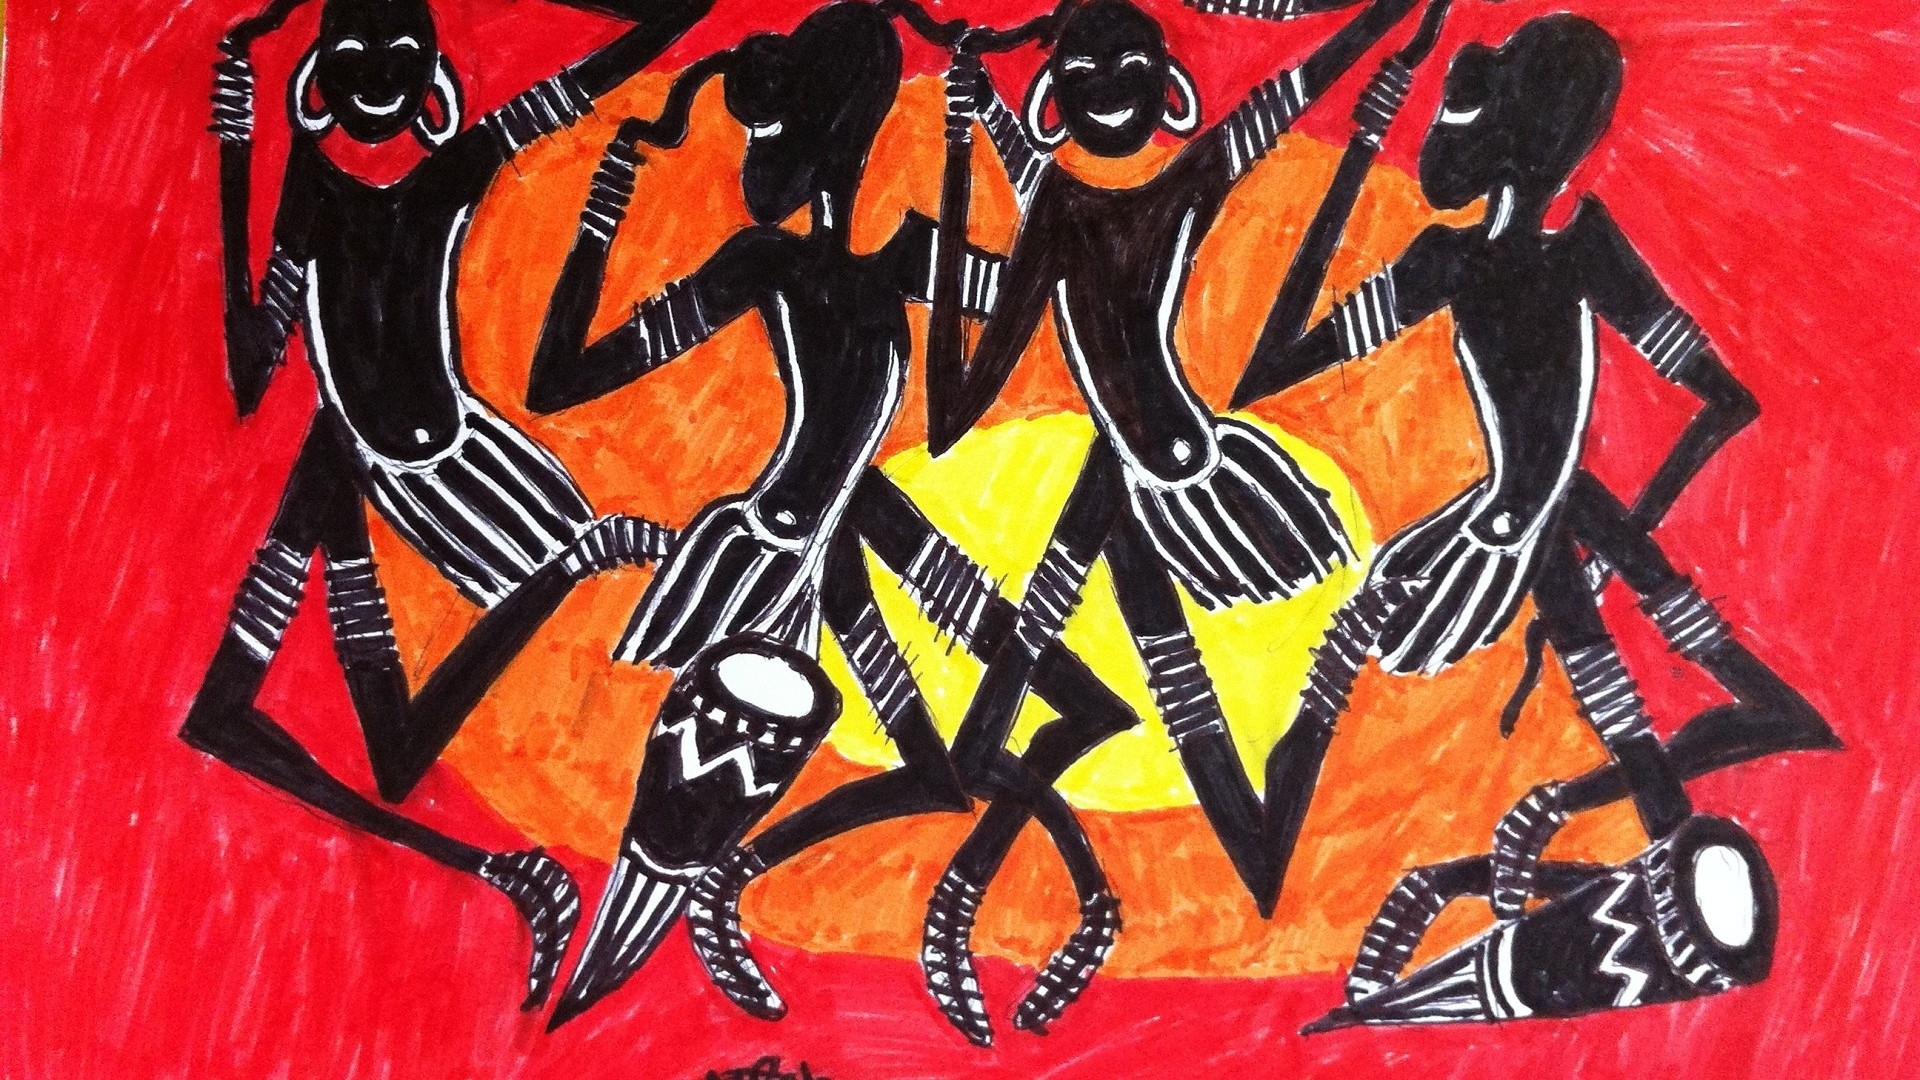 1920x1080 Africa, Arts, Paintings, African Art, Dance, Dancers, African Art Paintings